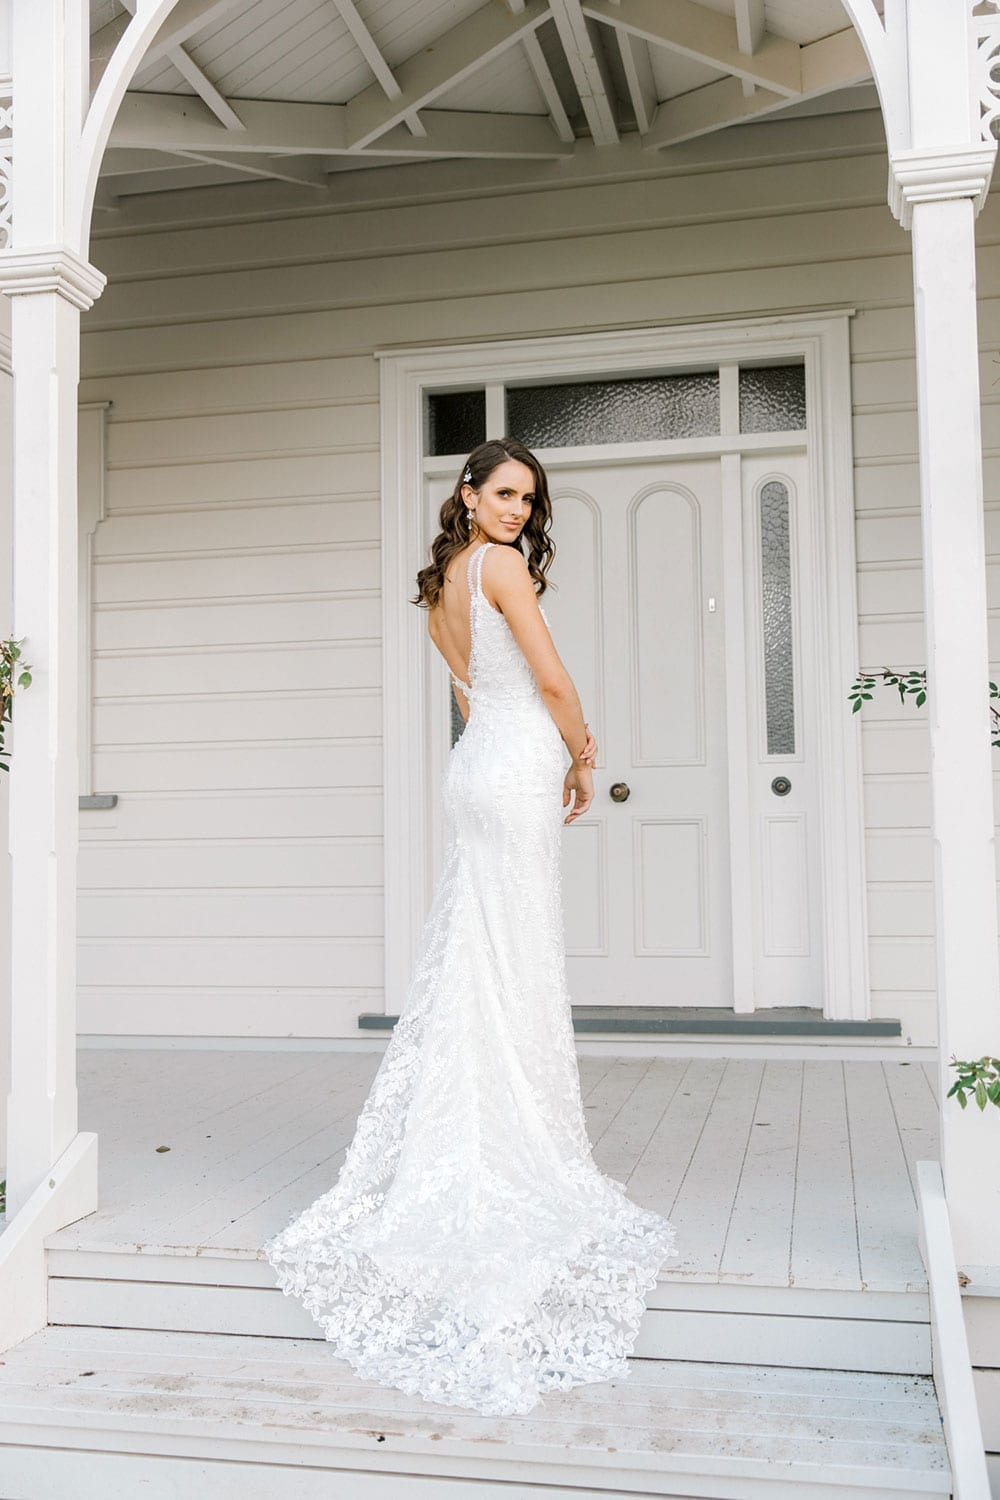 Model wearing Vinka Design Camille Wedding Dress, a Timeless Fitted Wedding Gown on the veranda of a wooden building with an arch facing away showing low back on dress